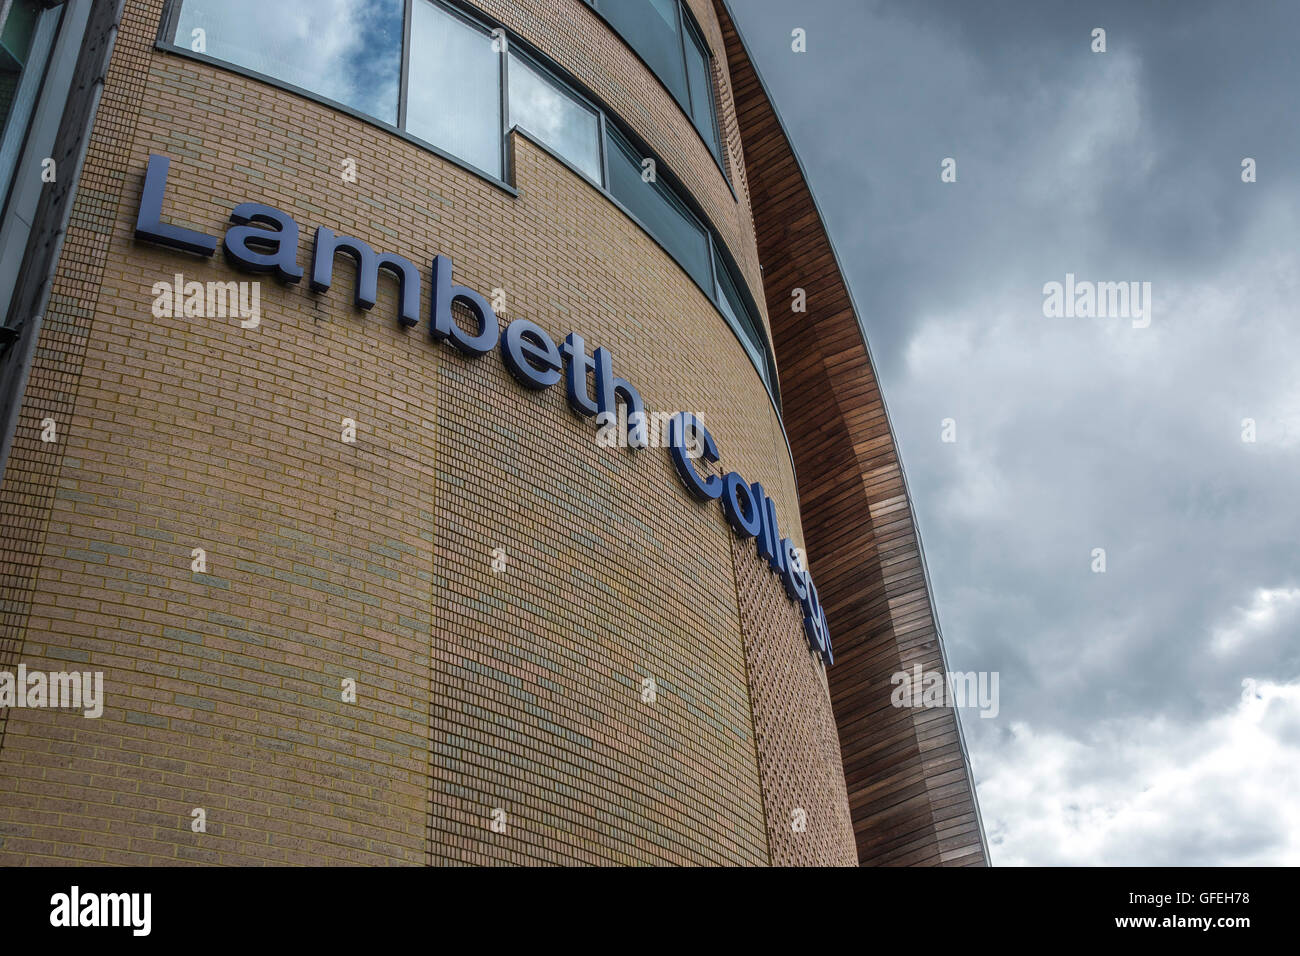 Lambeth College is a Further Education college in the London Borough of Lambeth. - Stock Image